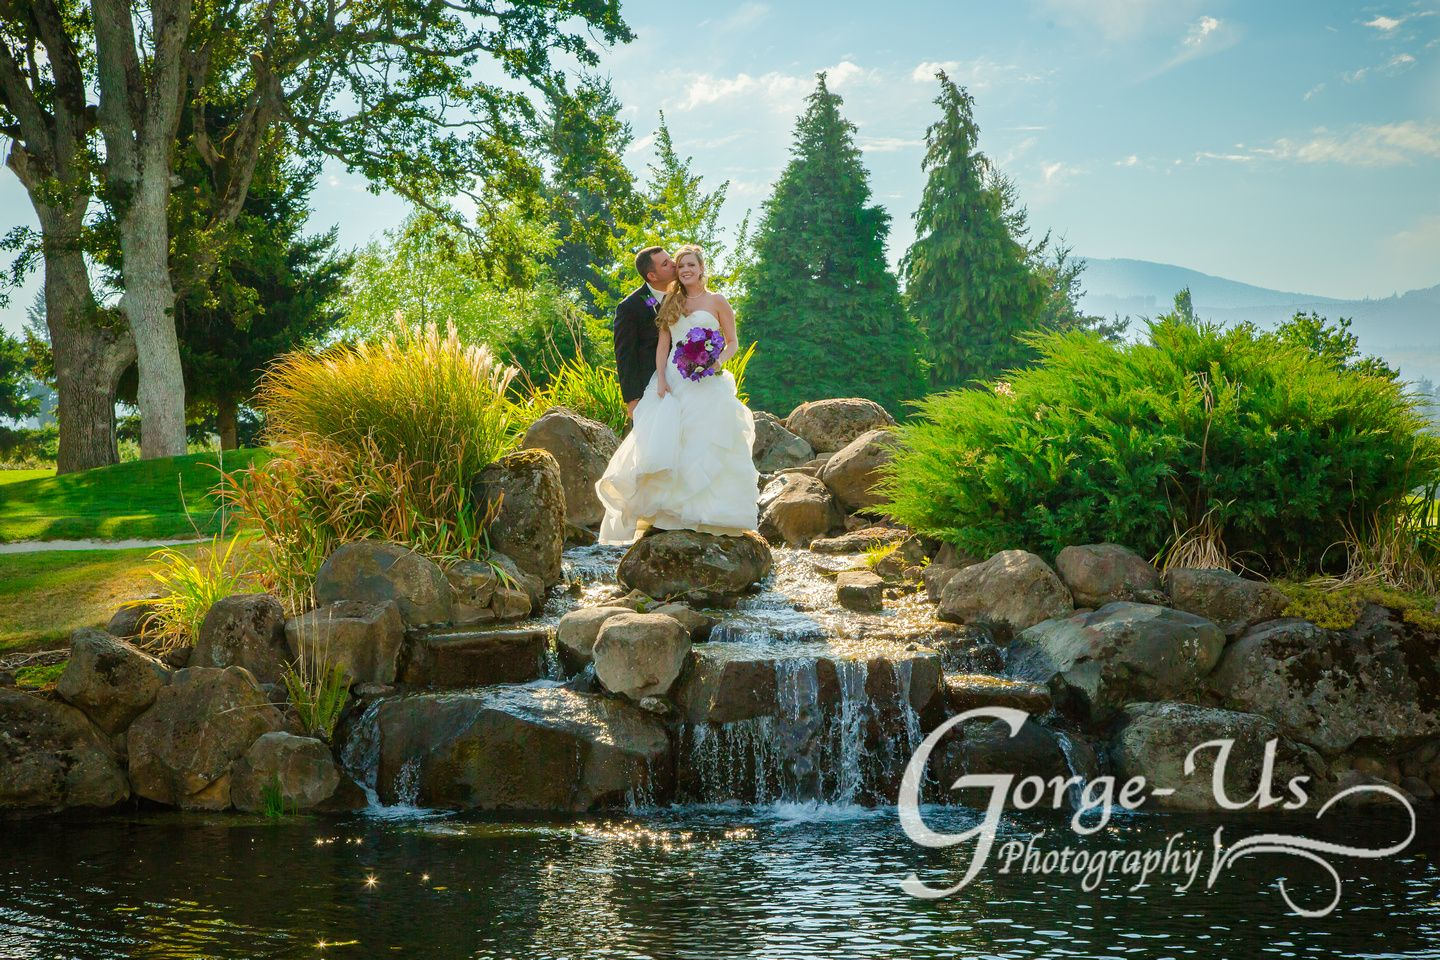 Wedding Photo Of Bride Groom On Waterfall Indian Creek Golf Course Hood River